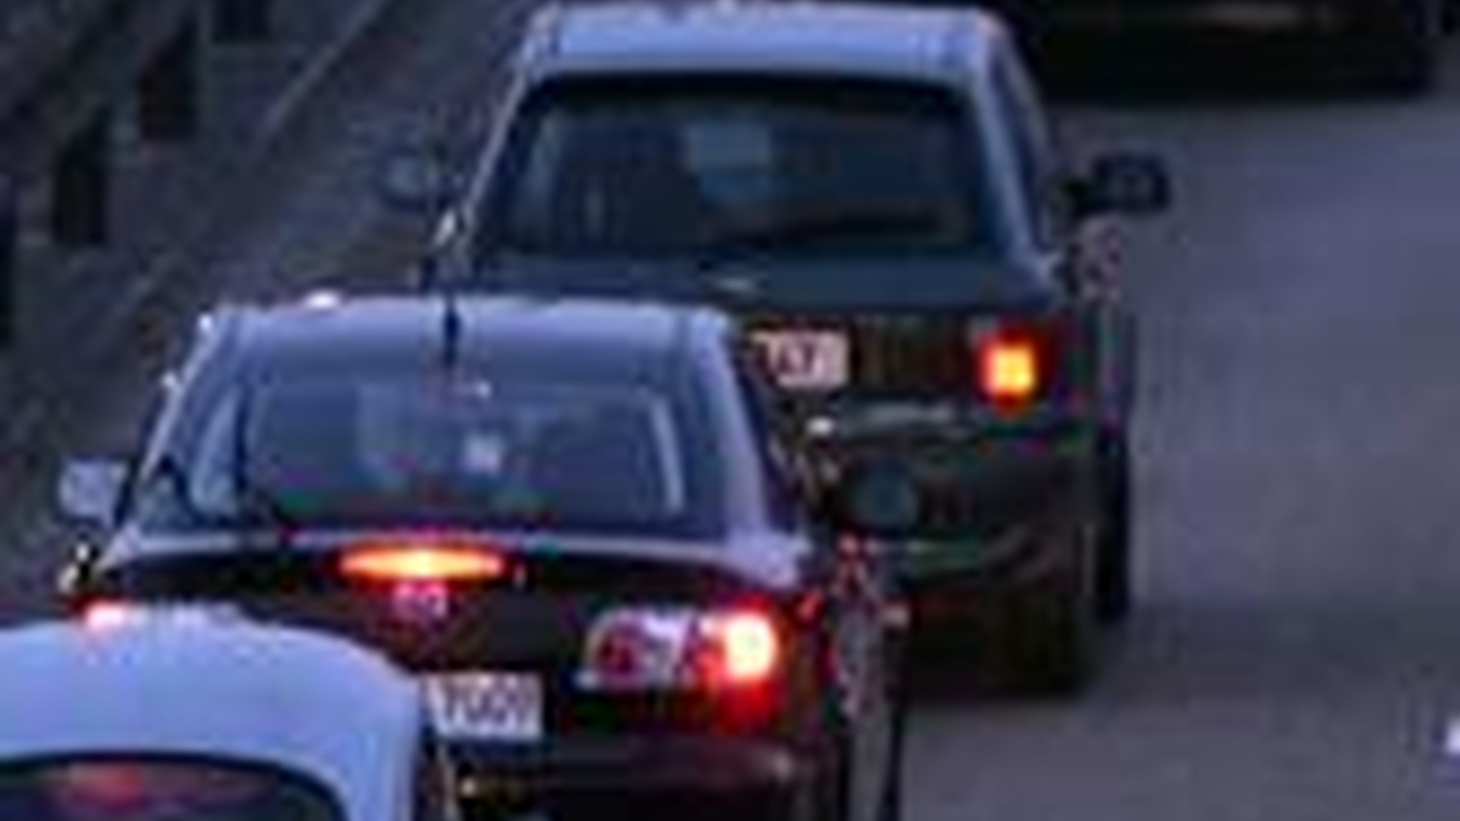 There have been twenty years of development on LA's Westside, but no master plan for transportation. The result is massive traffic congestion and a lot of unhappy people. Now the City Council has voted for temporary measures to ease the pain. Tonight we'll hear about traffic signal improvements and left-turn lights.